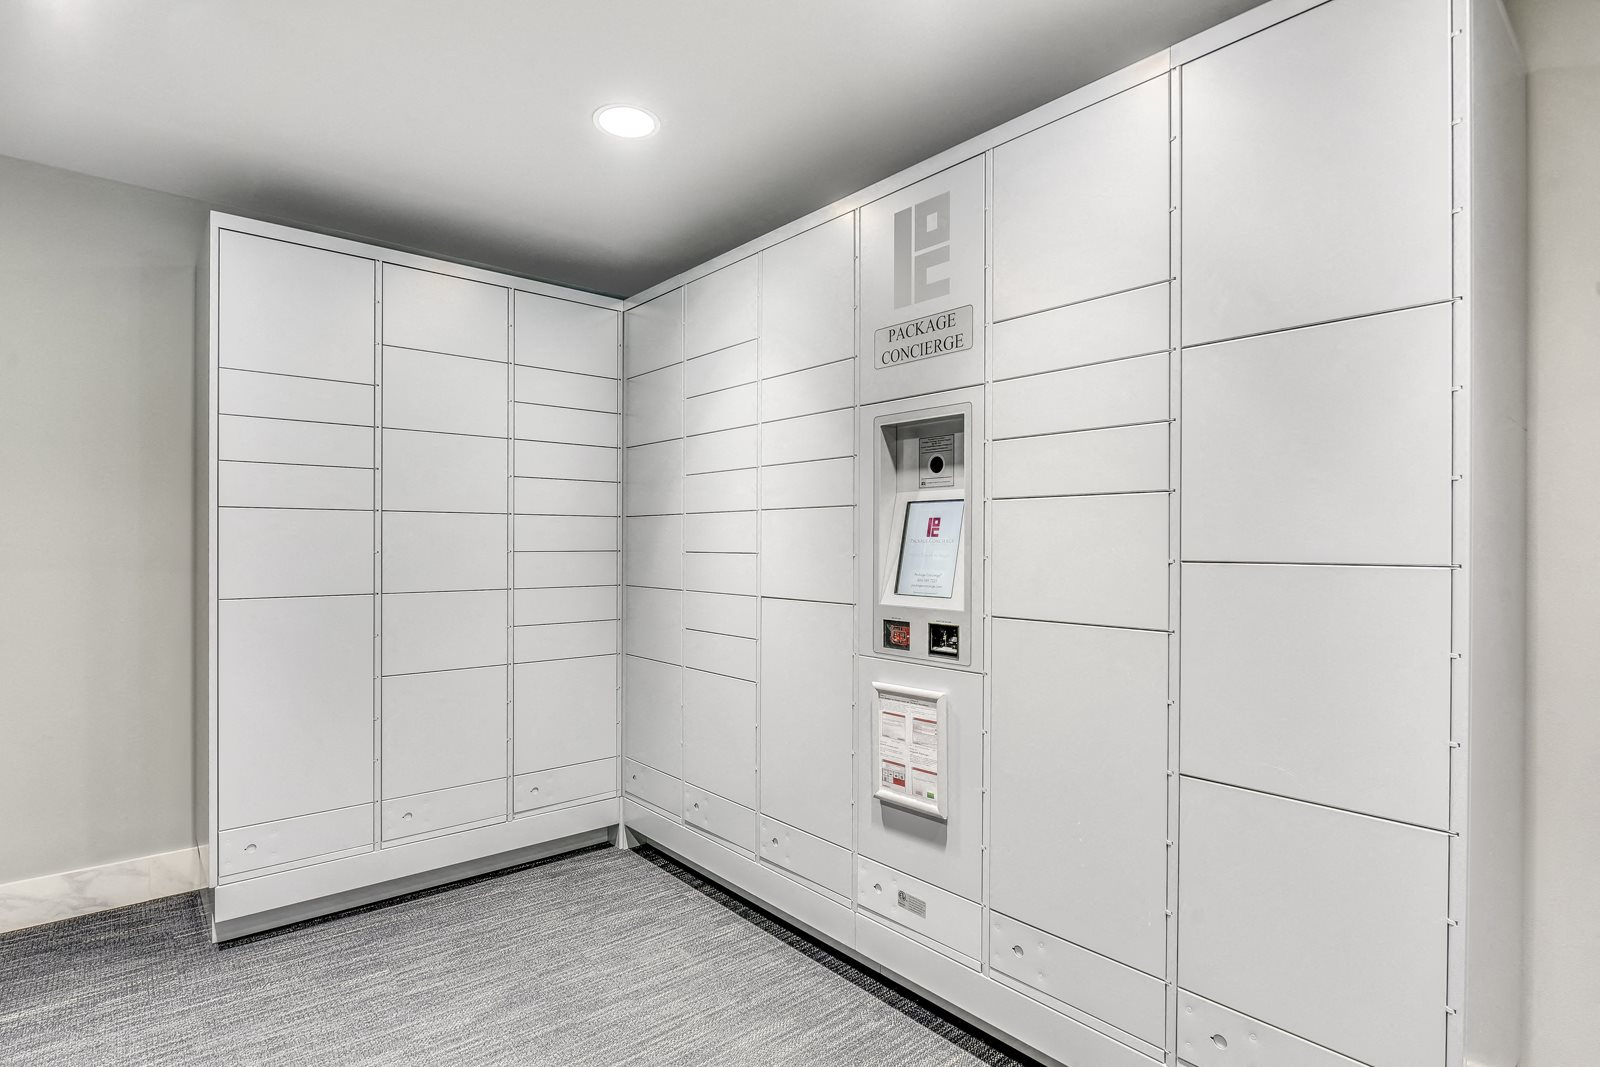 24-Hour Package Lockers and Concierge at The Martin, 98121, WA